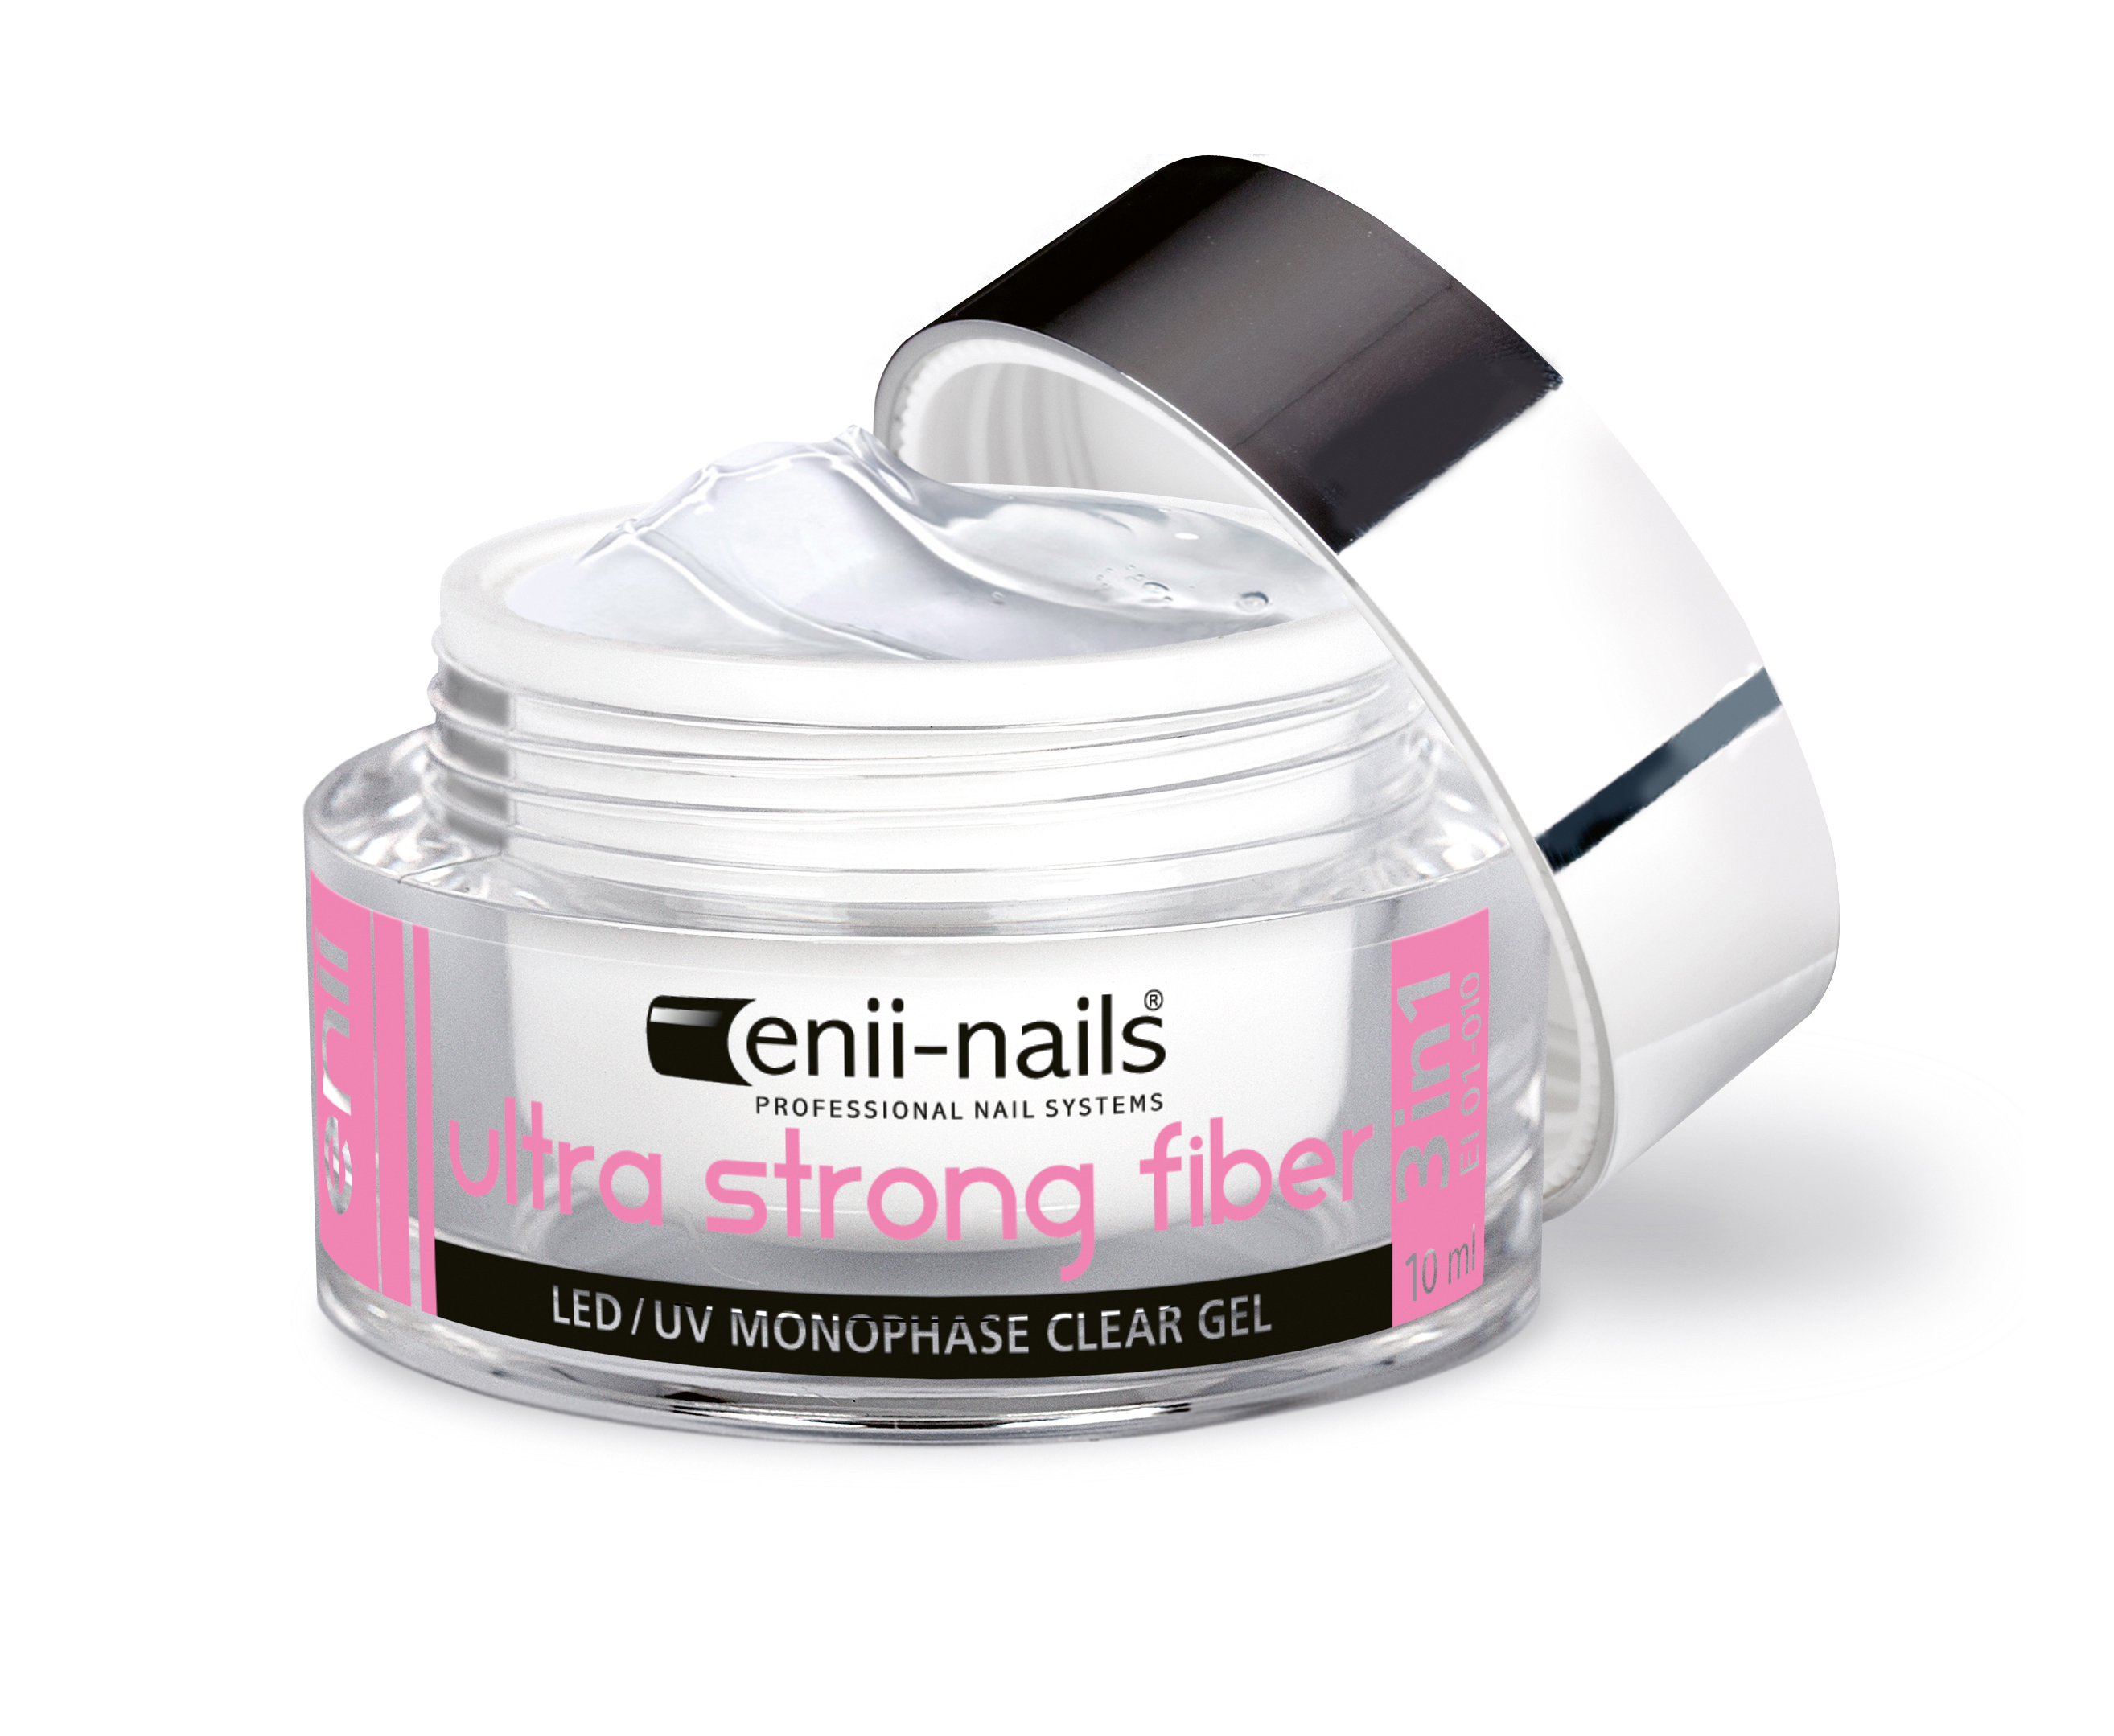 ENII-NAILS ENII ULTRA STRONG FIBER gel 10 ml